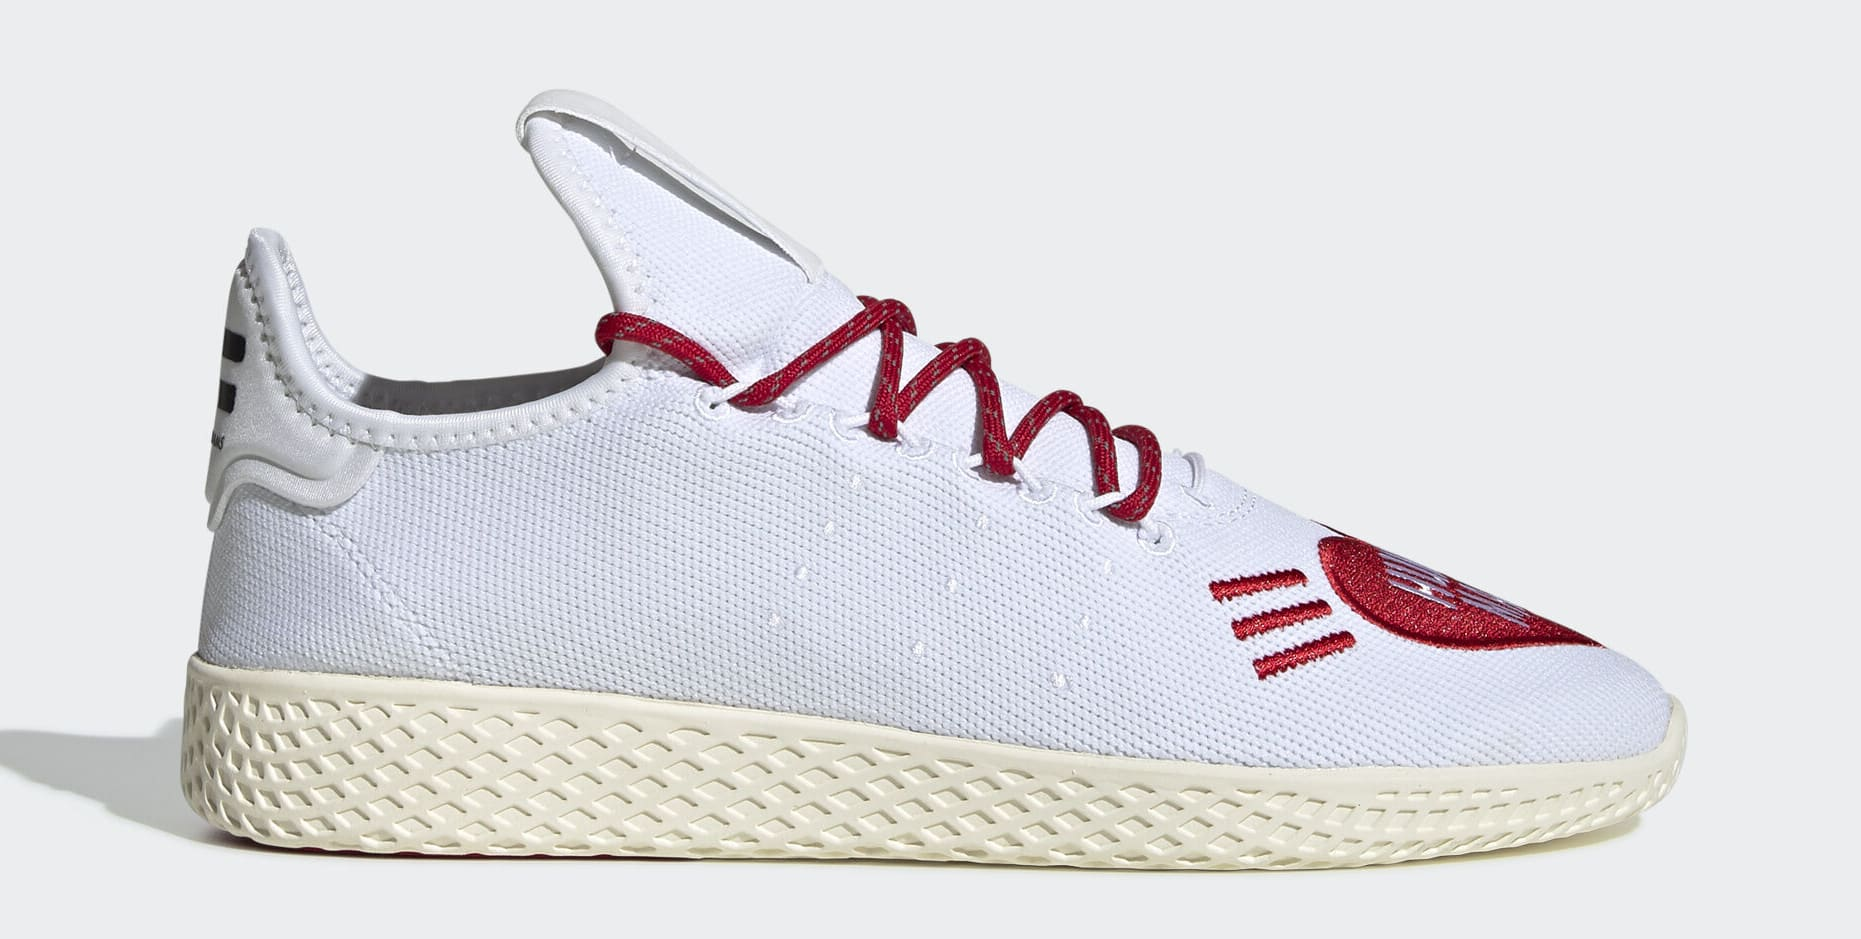 Human Made x Adidas Pharrell Collection Release Date Revealed: Photos